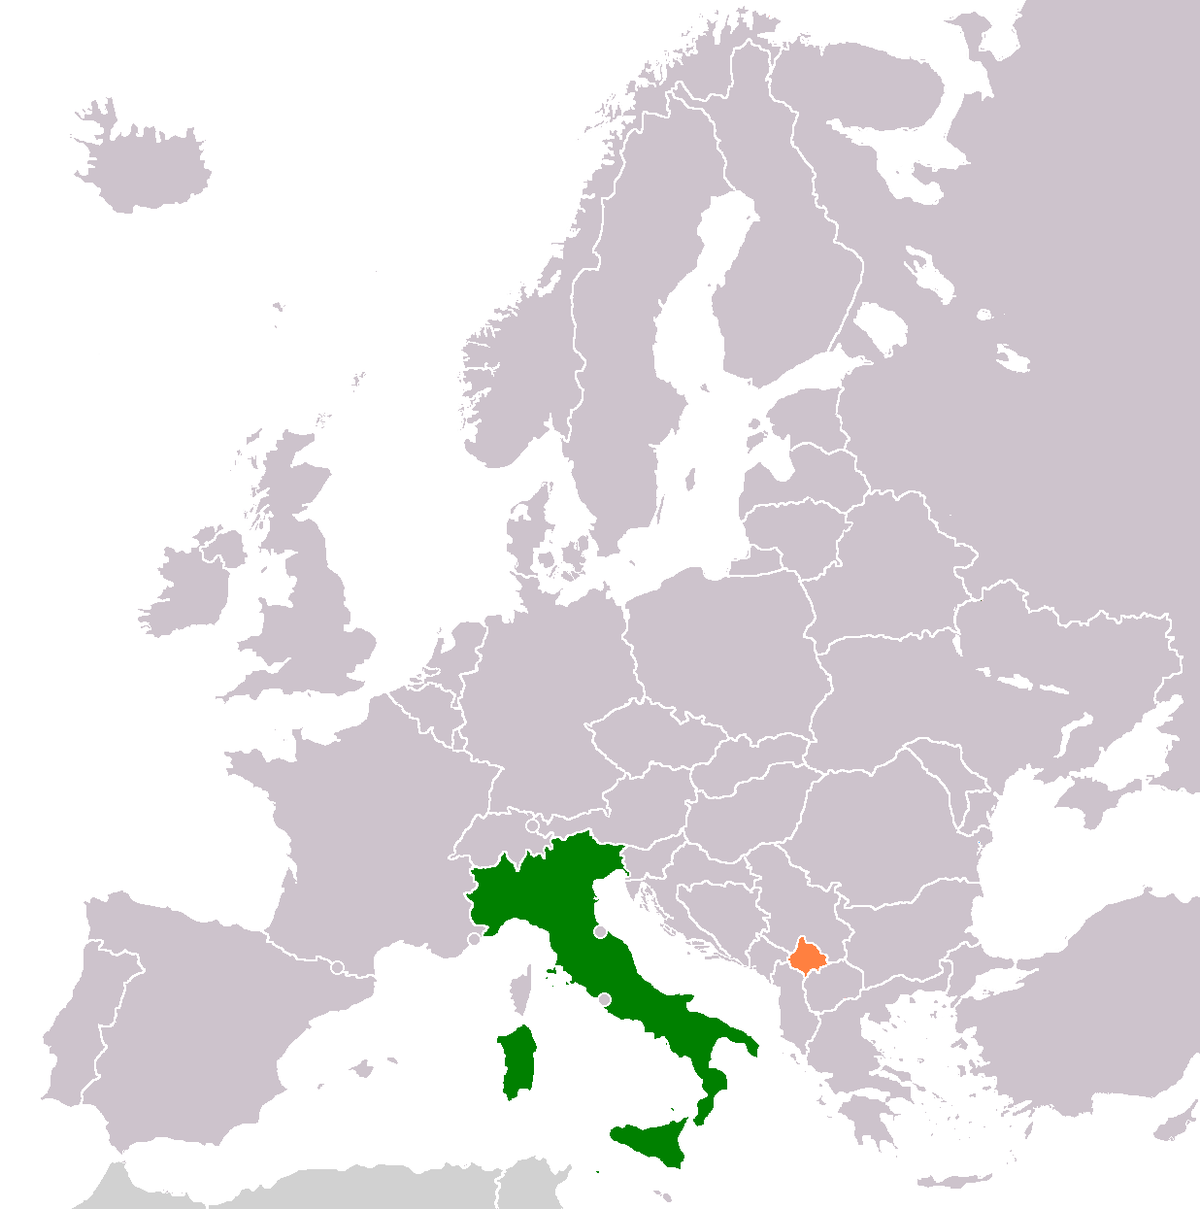 Map Of Europe With Italy Highlighted.Italy Kosovo Relations Wikipedia